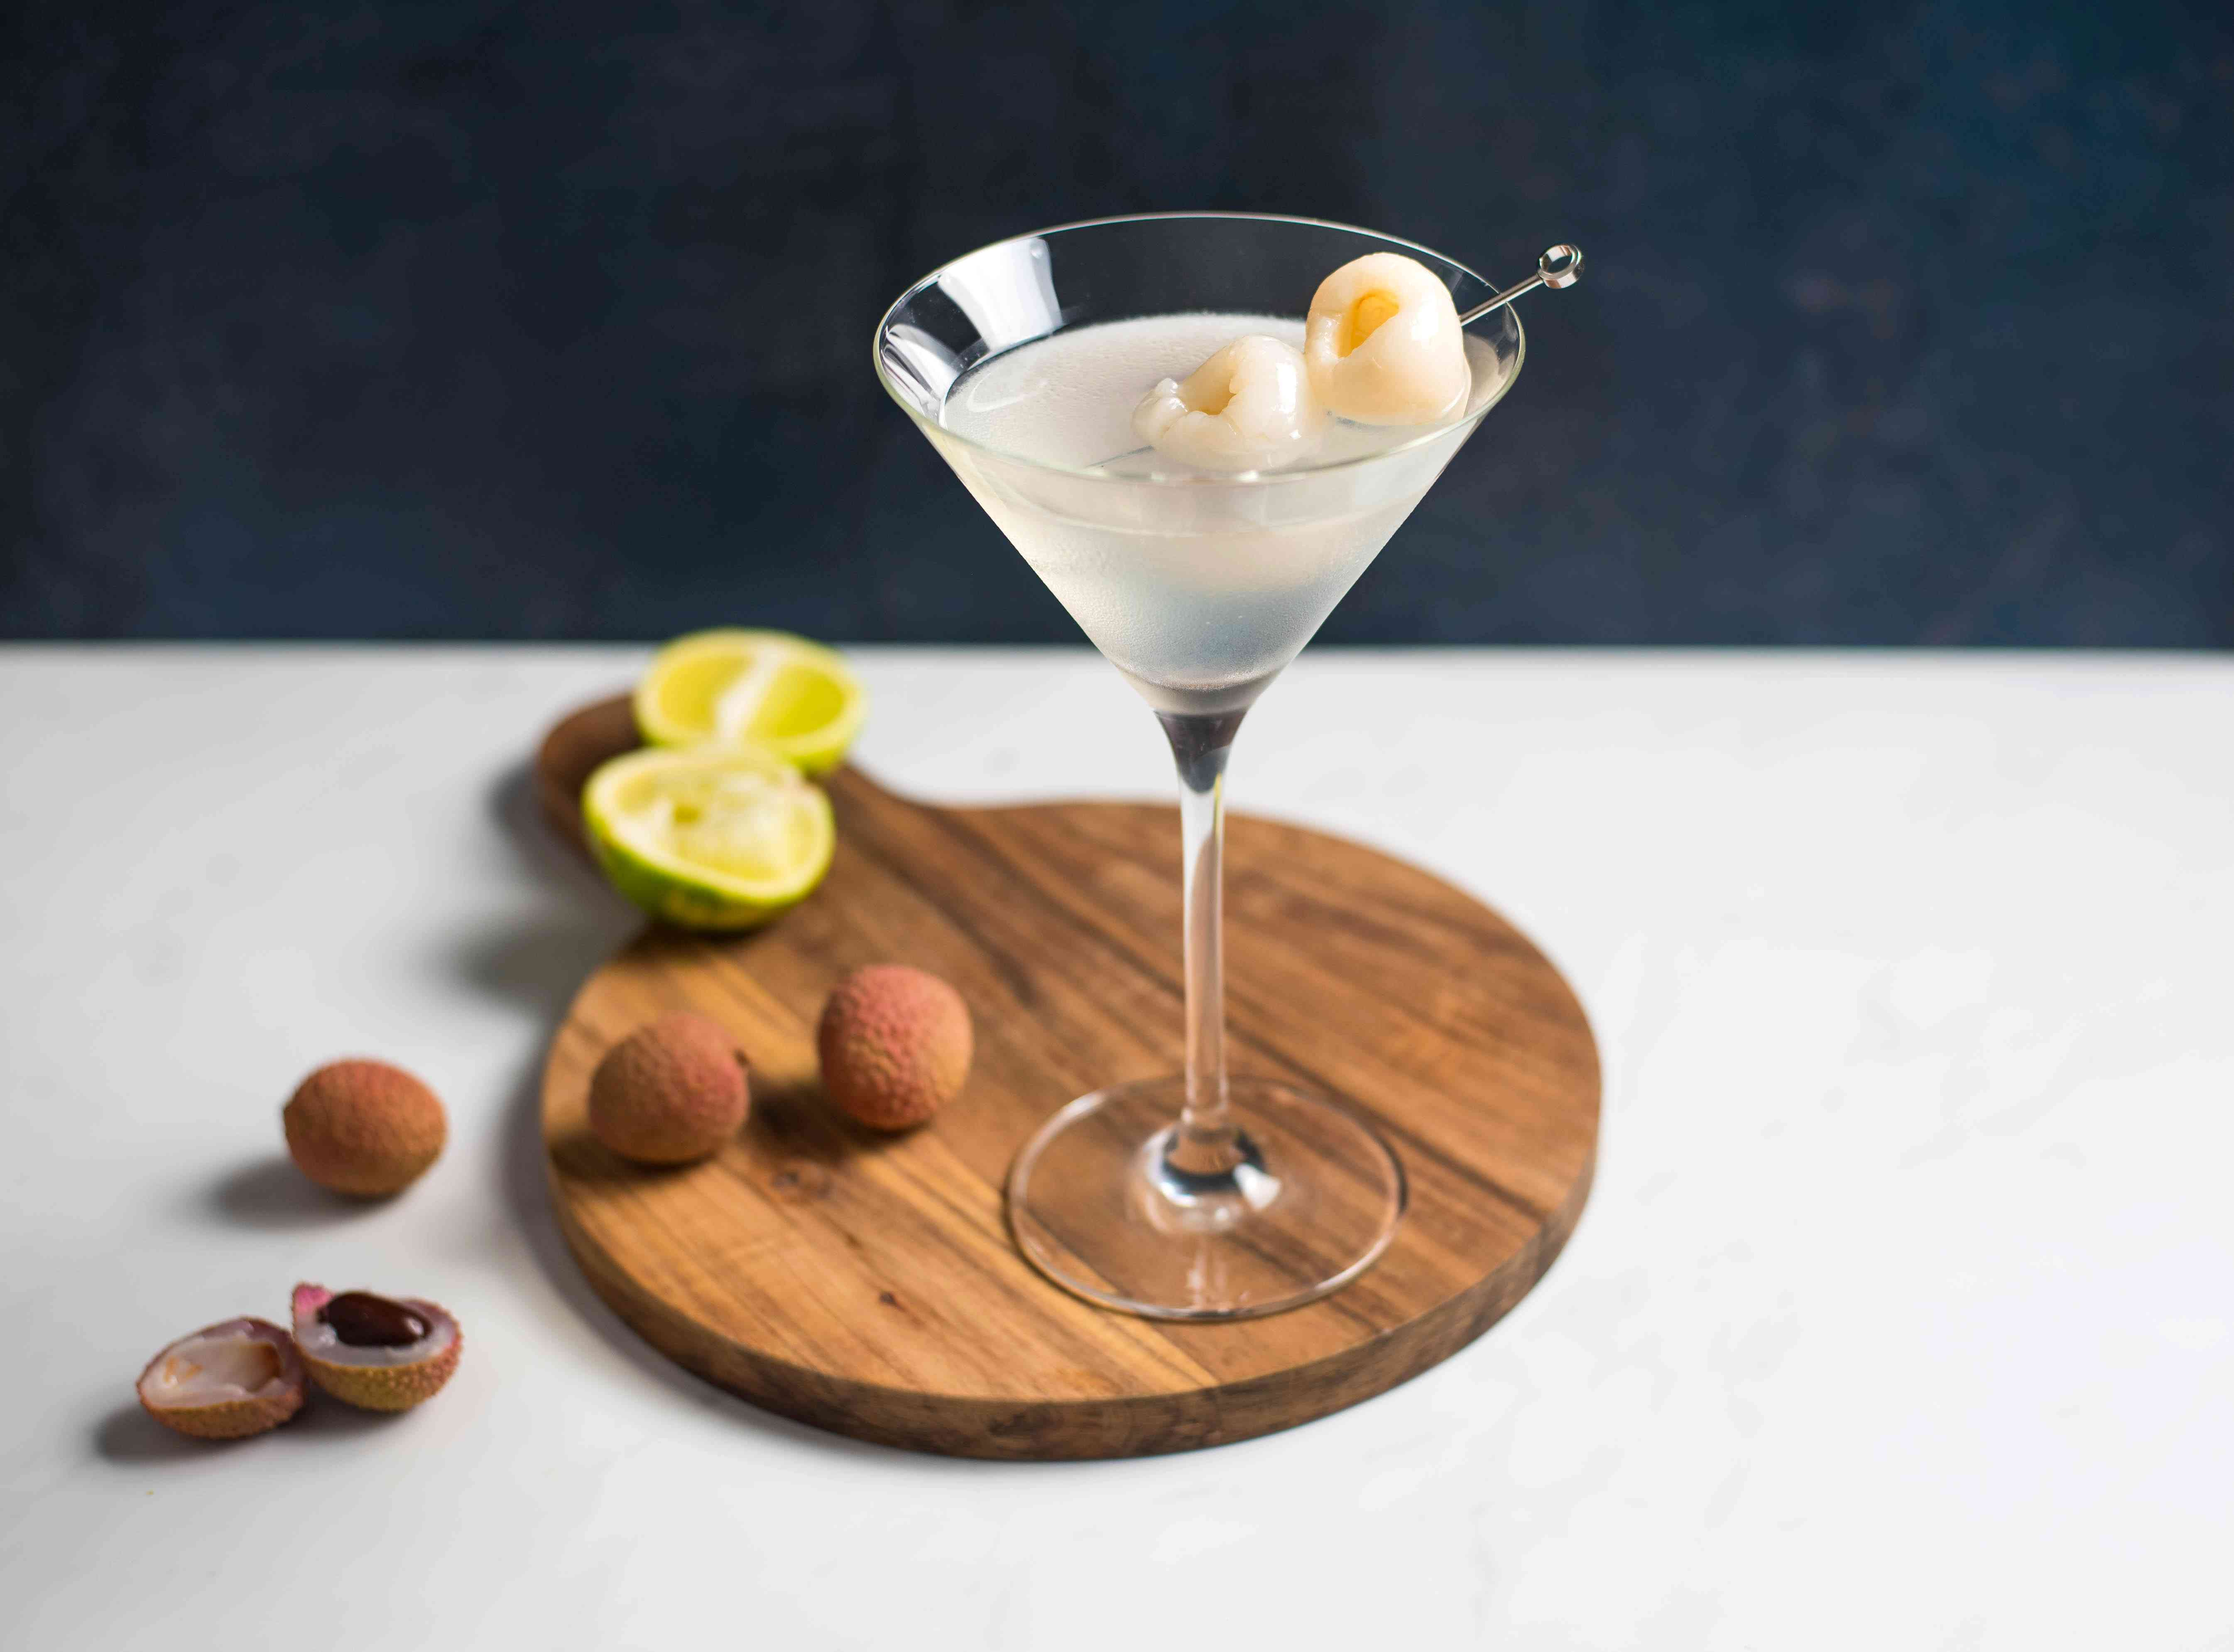 Lychee martini with some scattered lychee fruit and a lime